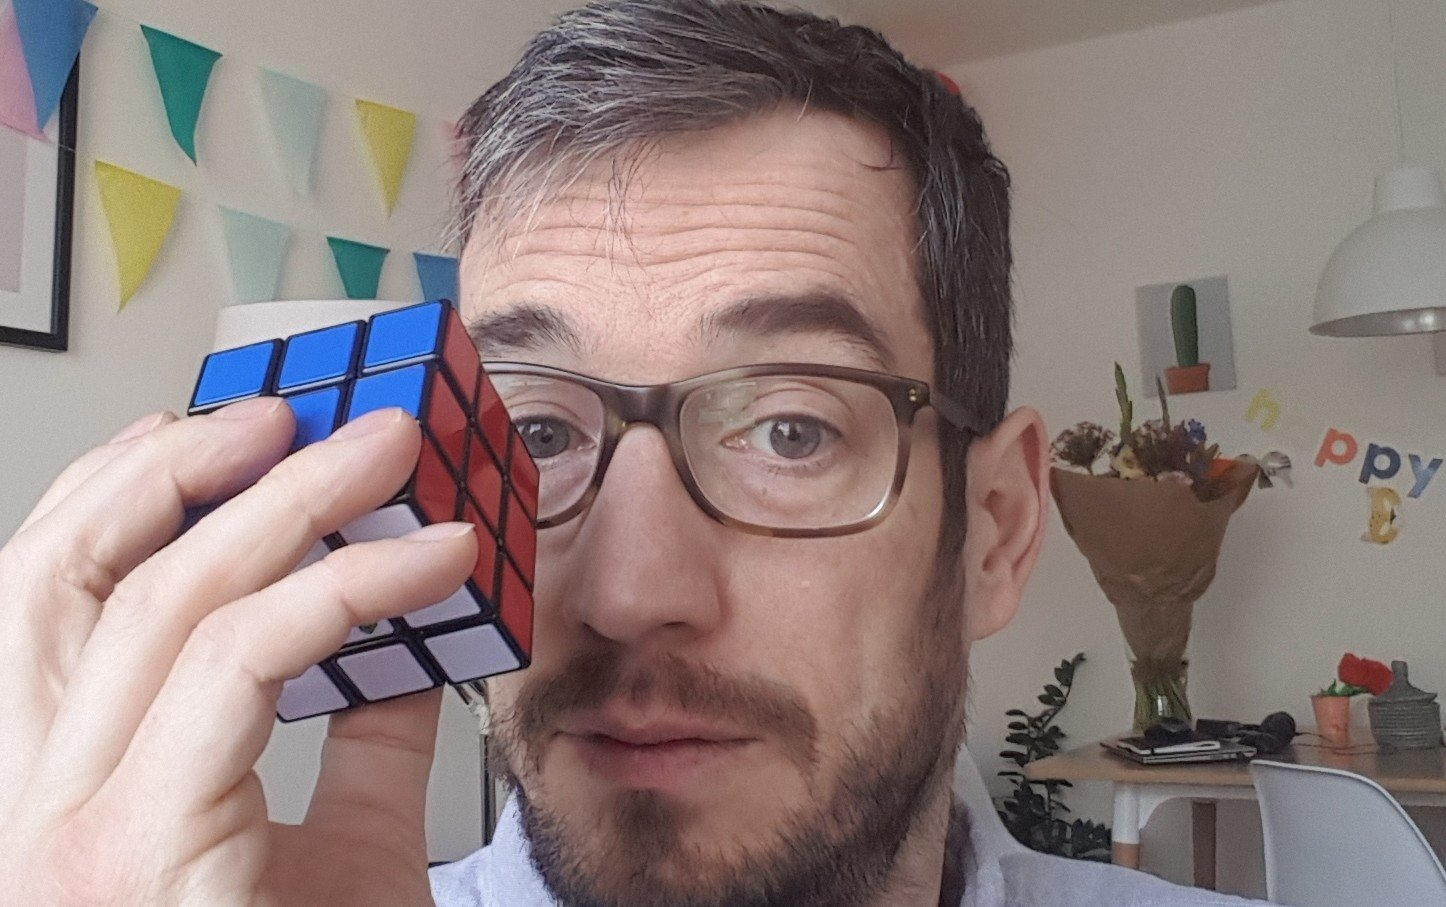 ryan millar face with rubik's cube